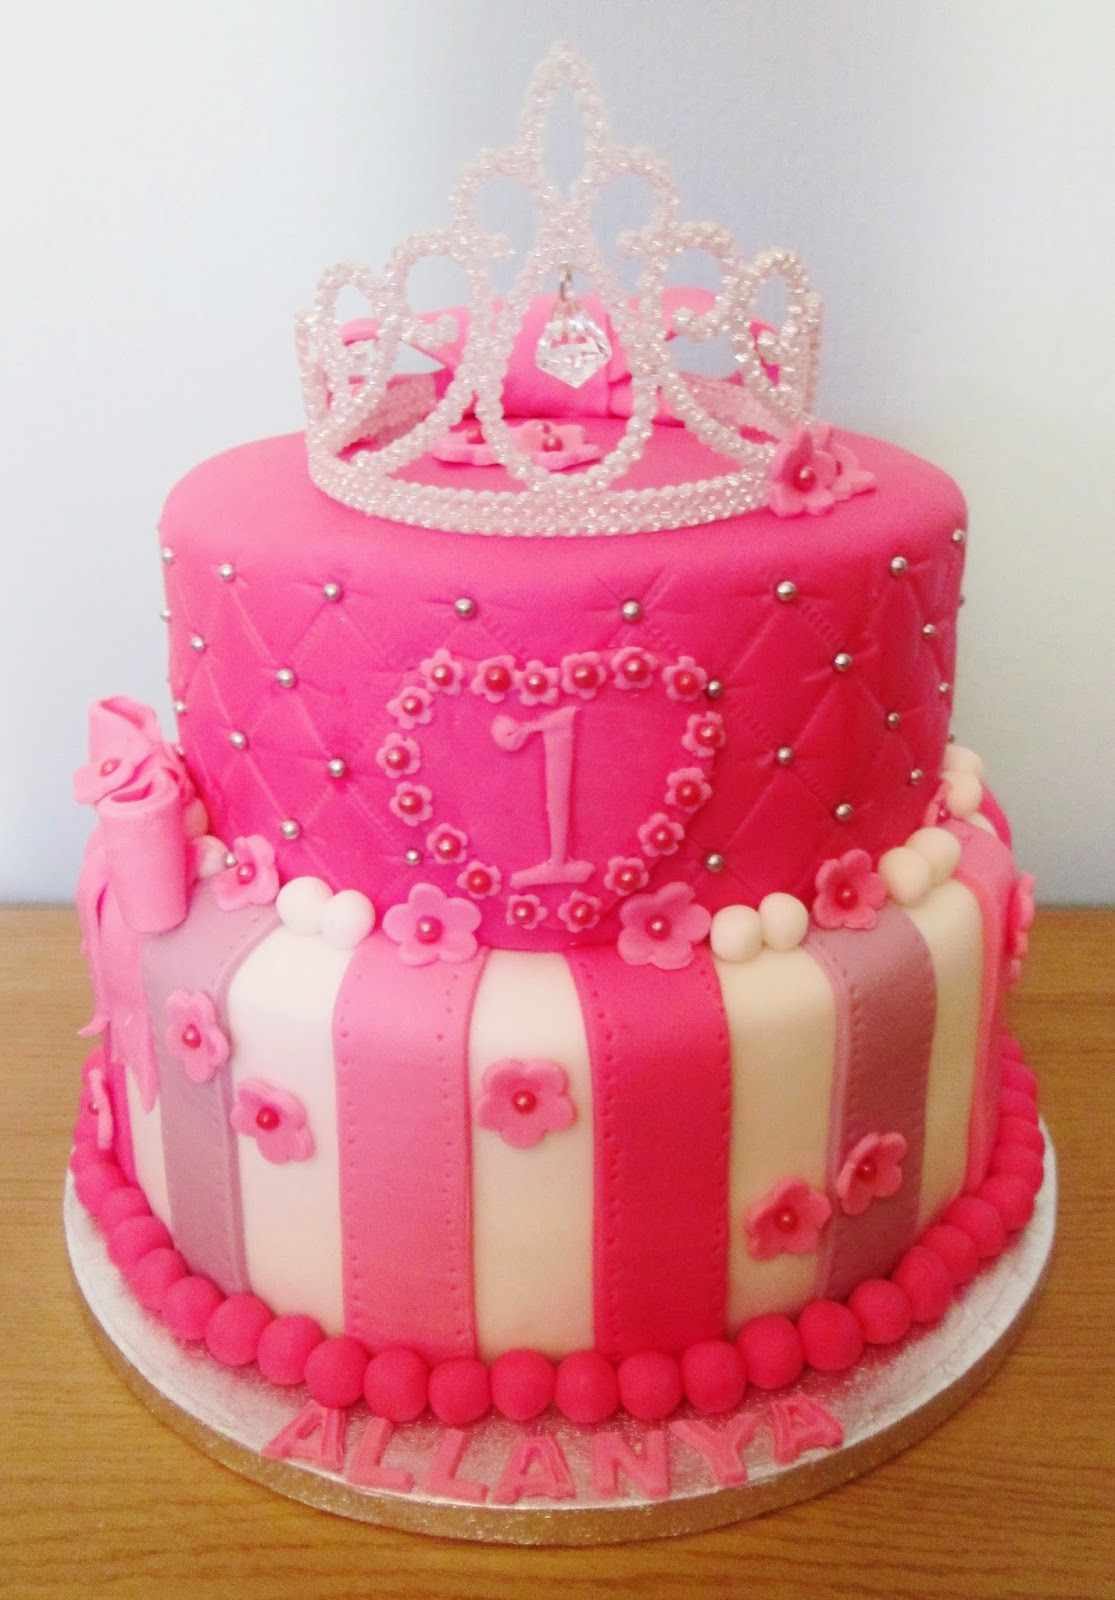 Best ideas about 2 Tier Birthday Cake . Save or Pin THE MESSY KITCHEN Basic sponge cake recipe Two tier etc Now.